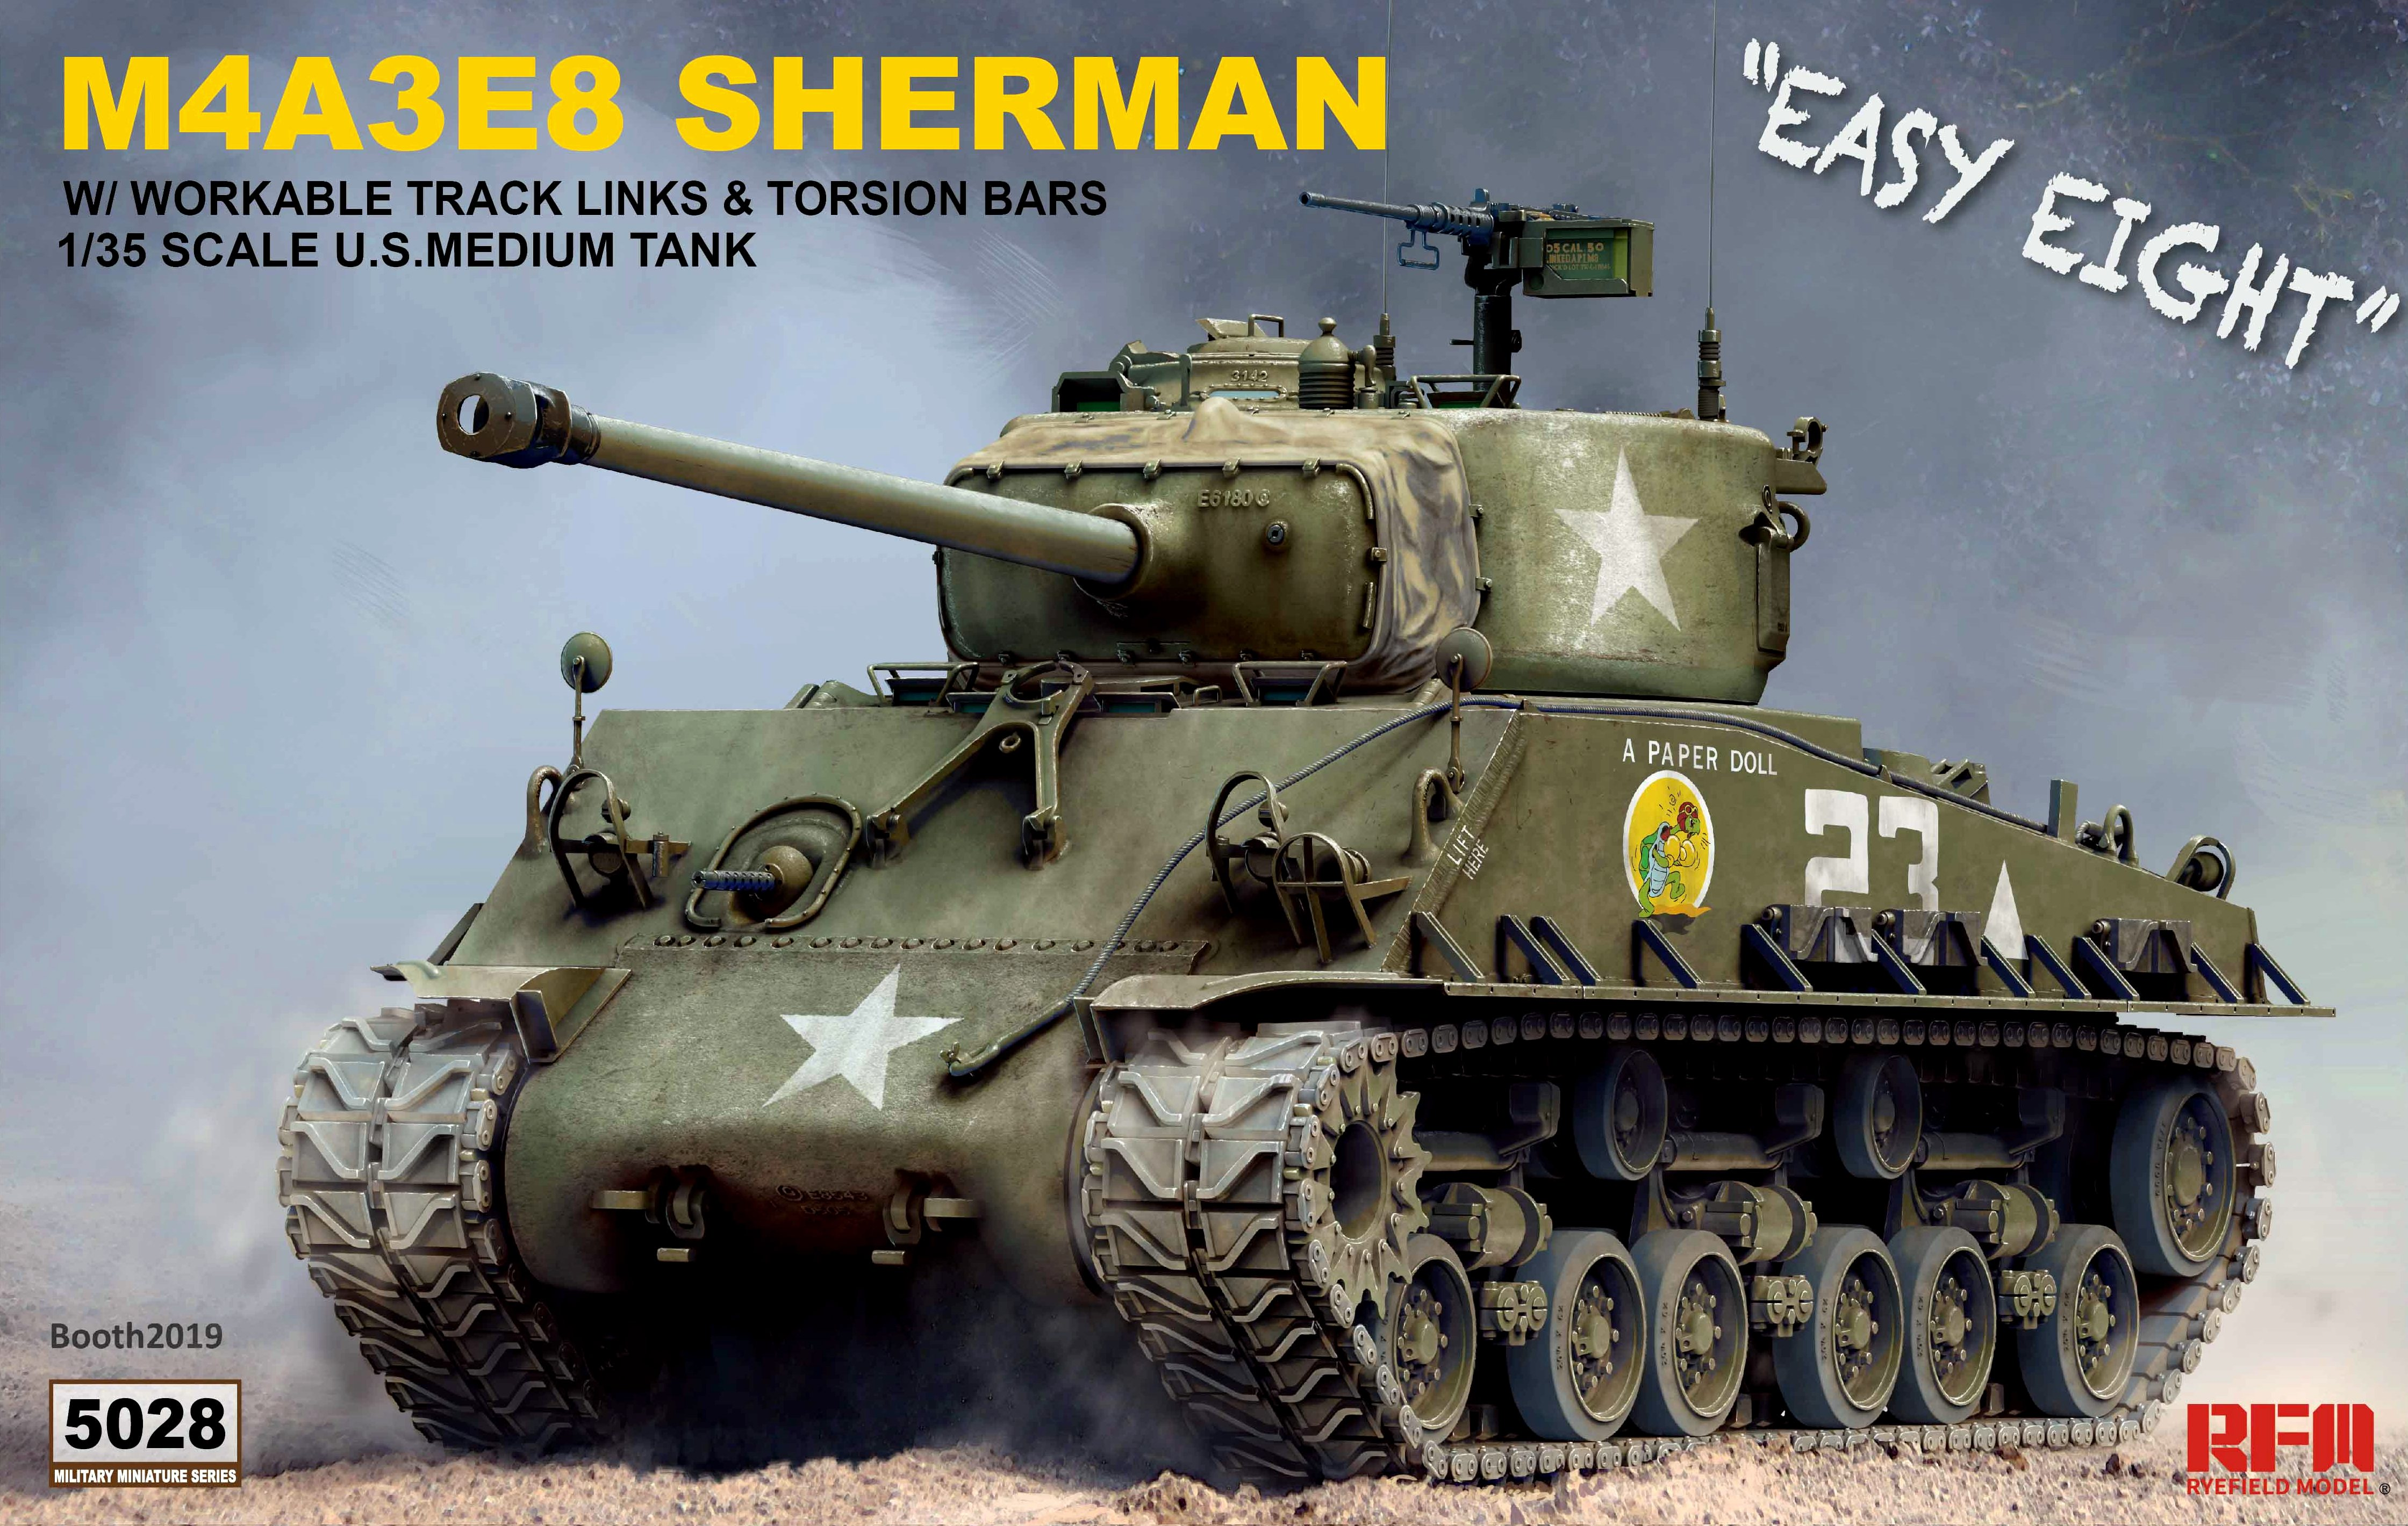 US Medium Tank M4A3E8 SHERMAN w/ Workable Tracks Links